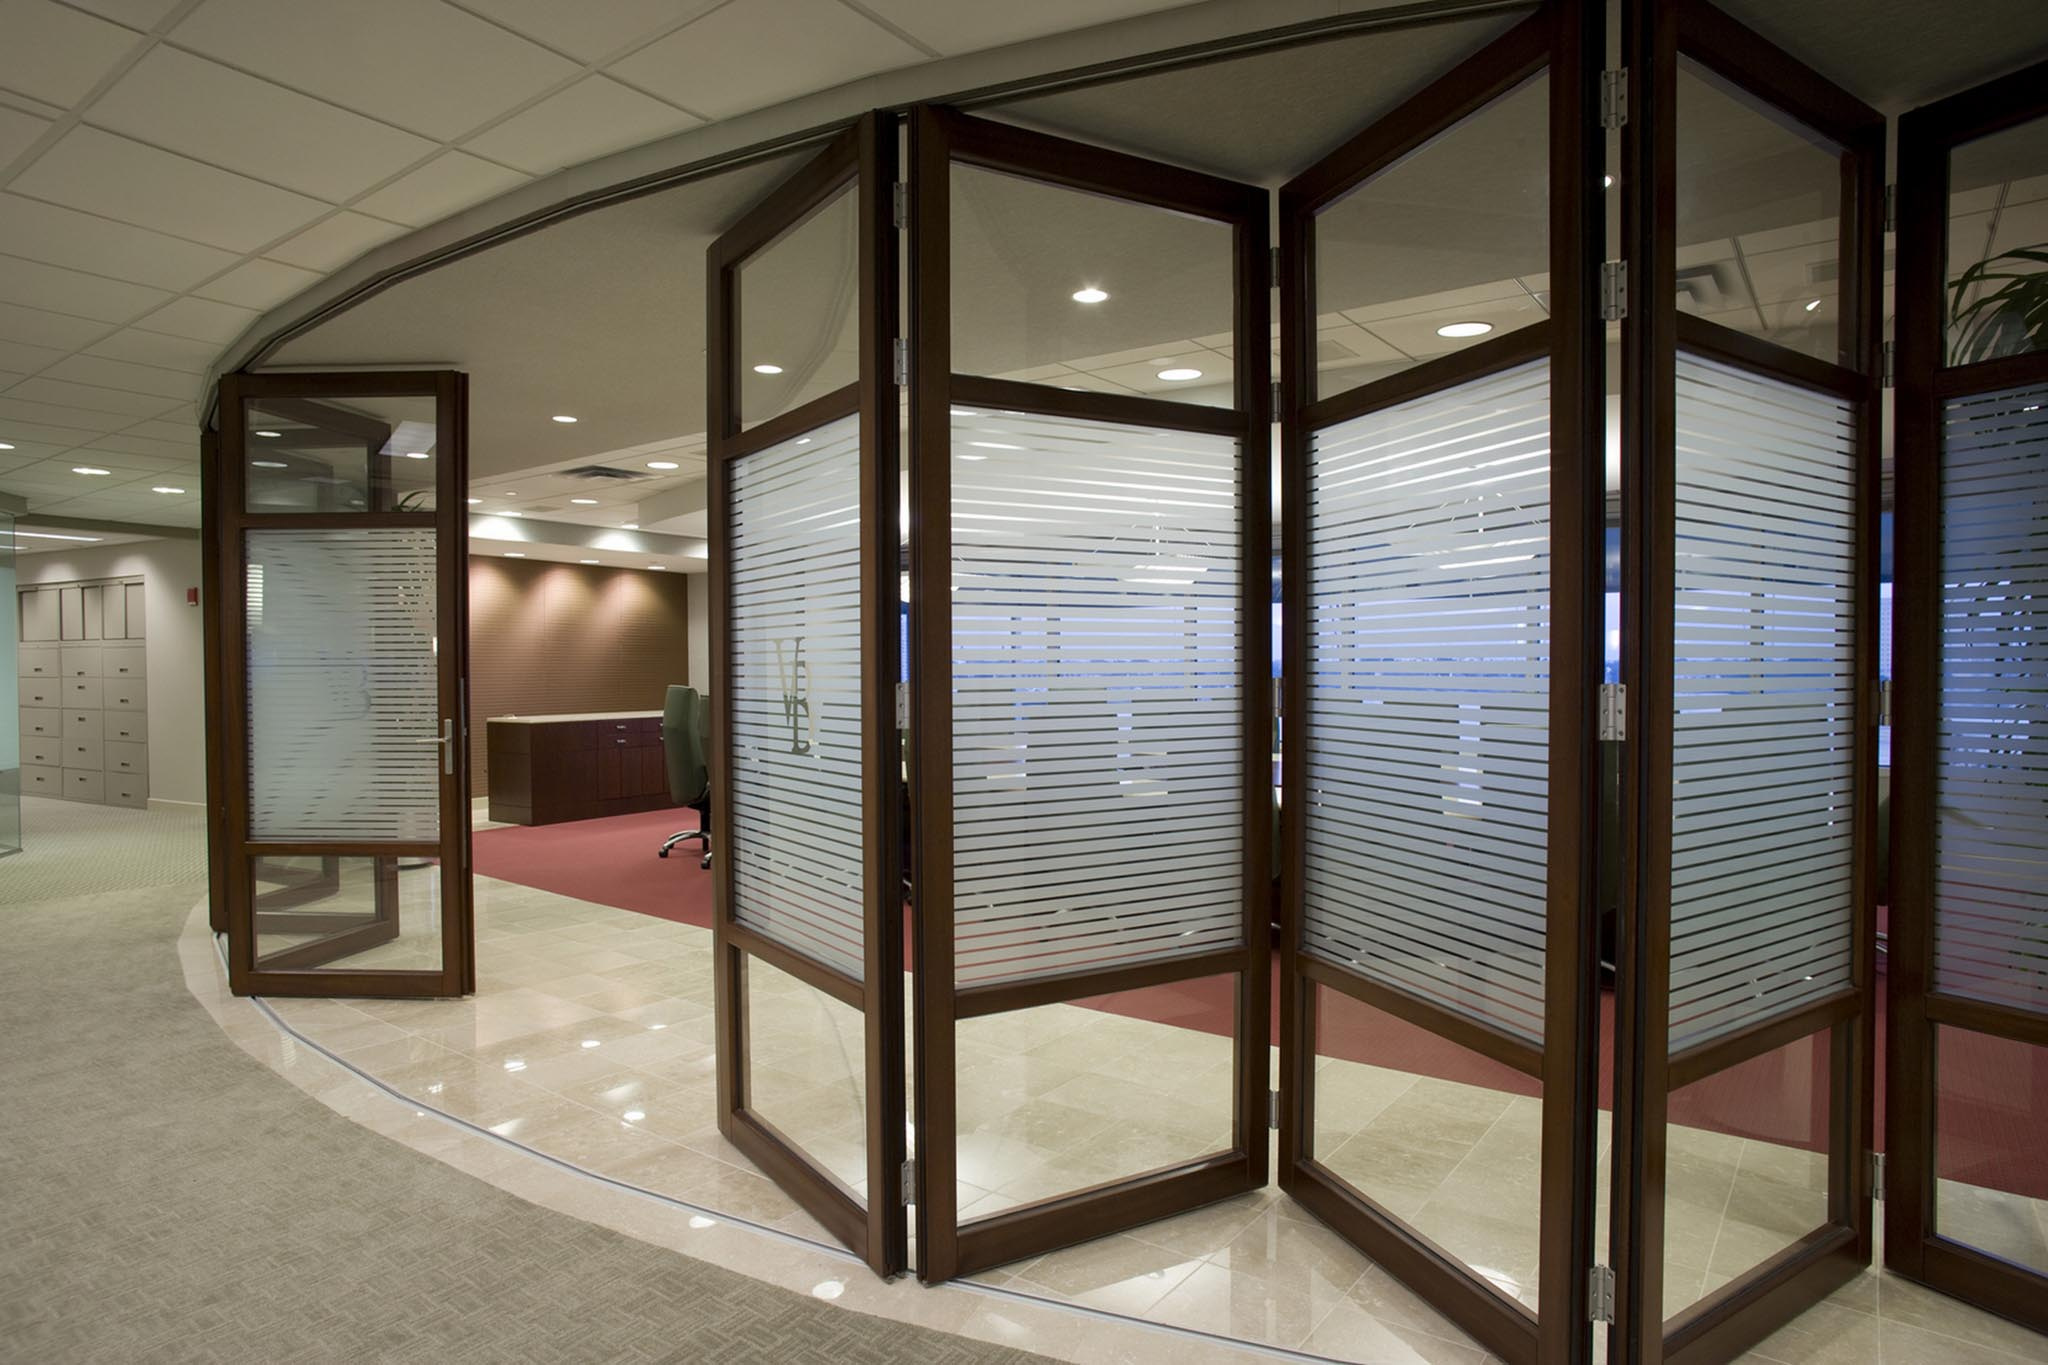 NanaWall WD65 Office & Vandeventer Black Office - All - Gallery | NanaWall - Operable ... Pezcame.Com